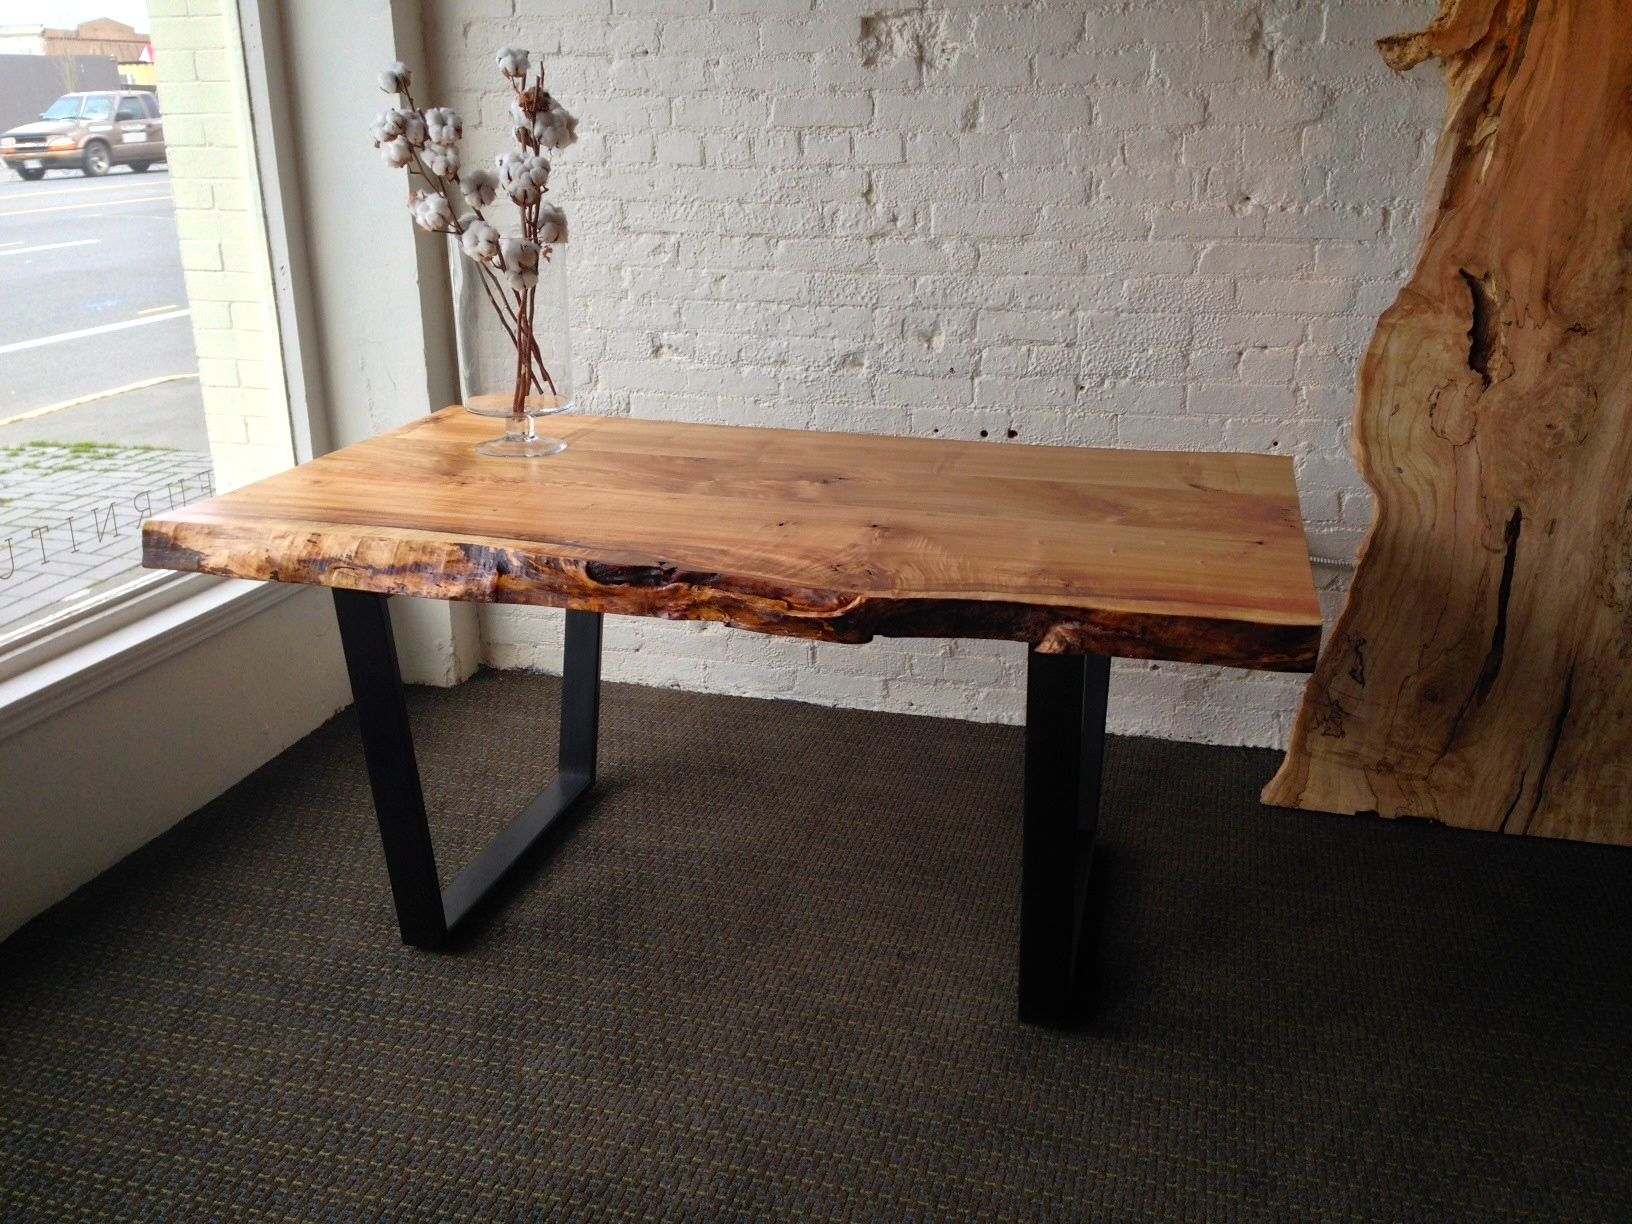 Tapered Coffee Table Legs Churchwood Dining Table 66 Inches Long Tapered Black Metal Legs